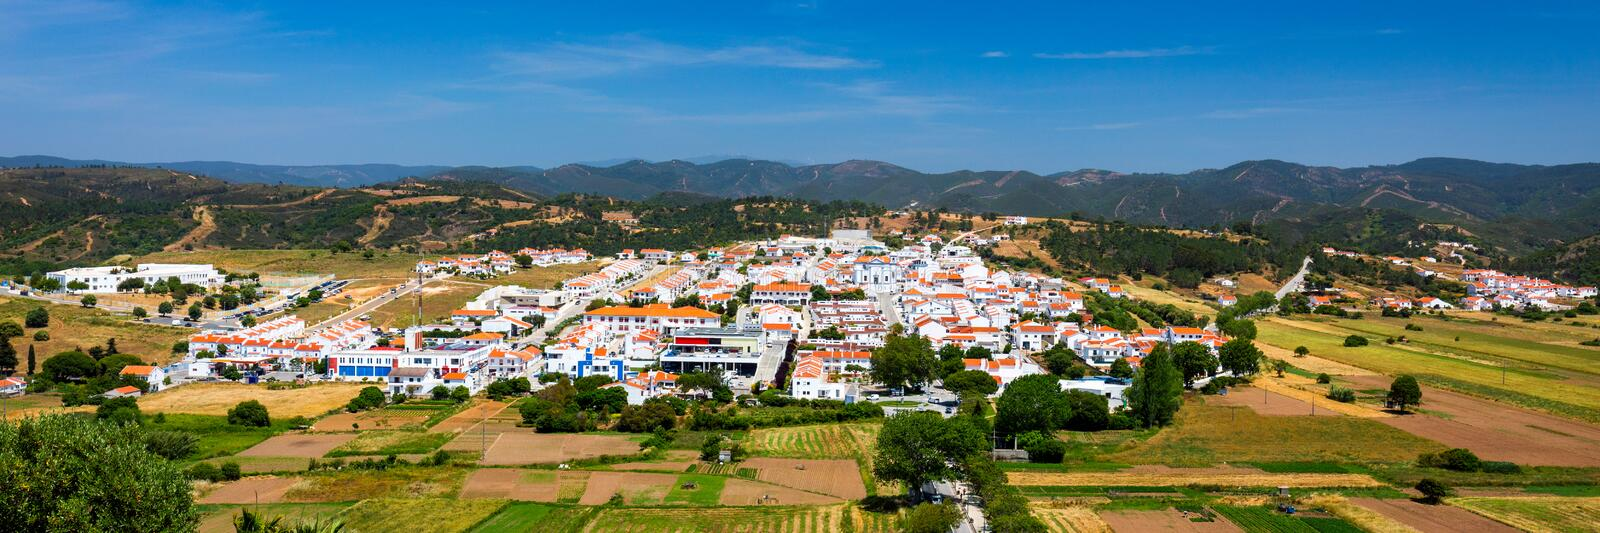 Charming architecture of hilly Aljezur, Algarve, Portugal. View to the small town of Aljezur with traditional portuguese houses royalty free stock images